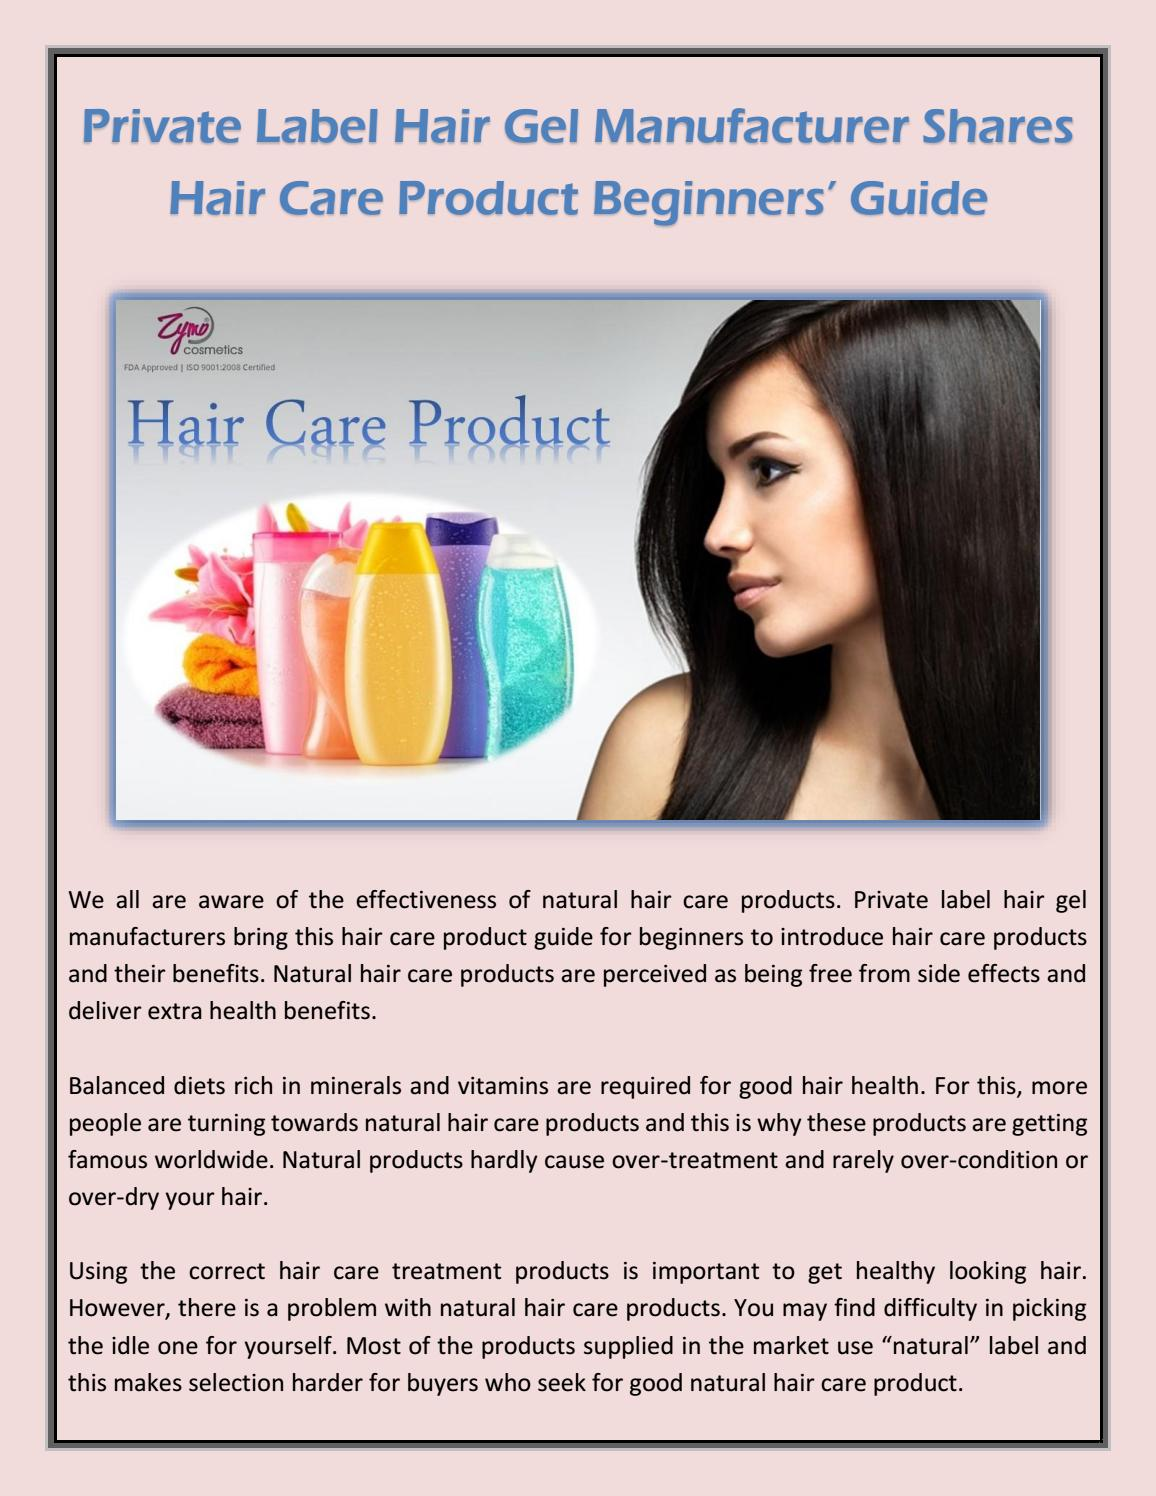 Private Label Hair Gel Manufacturer Shares Hair Care Product Beginners Guide By Zymo Cosmetics Issuu